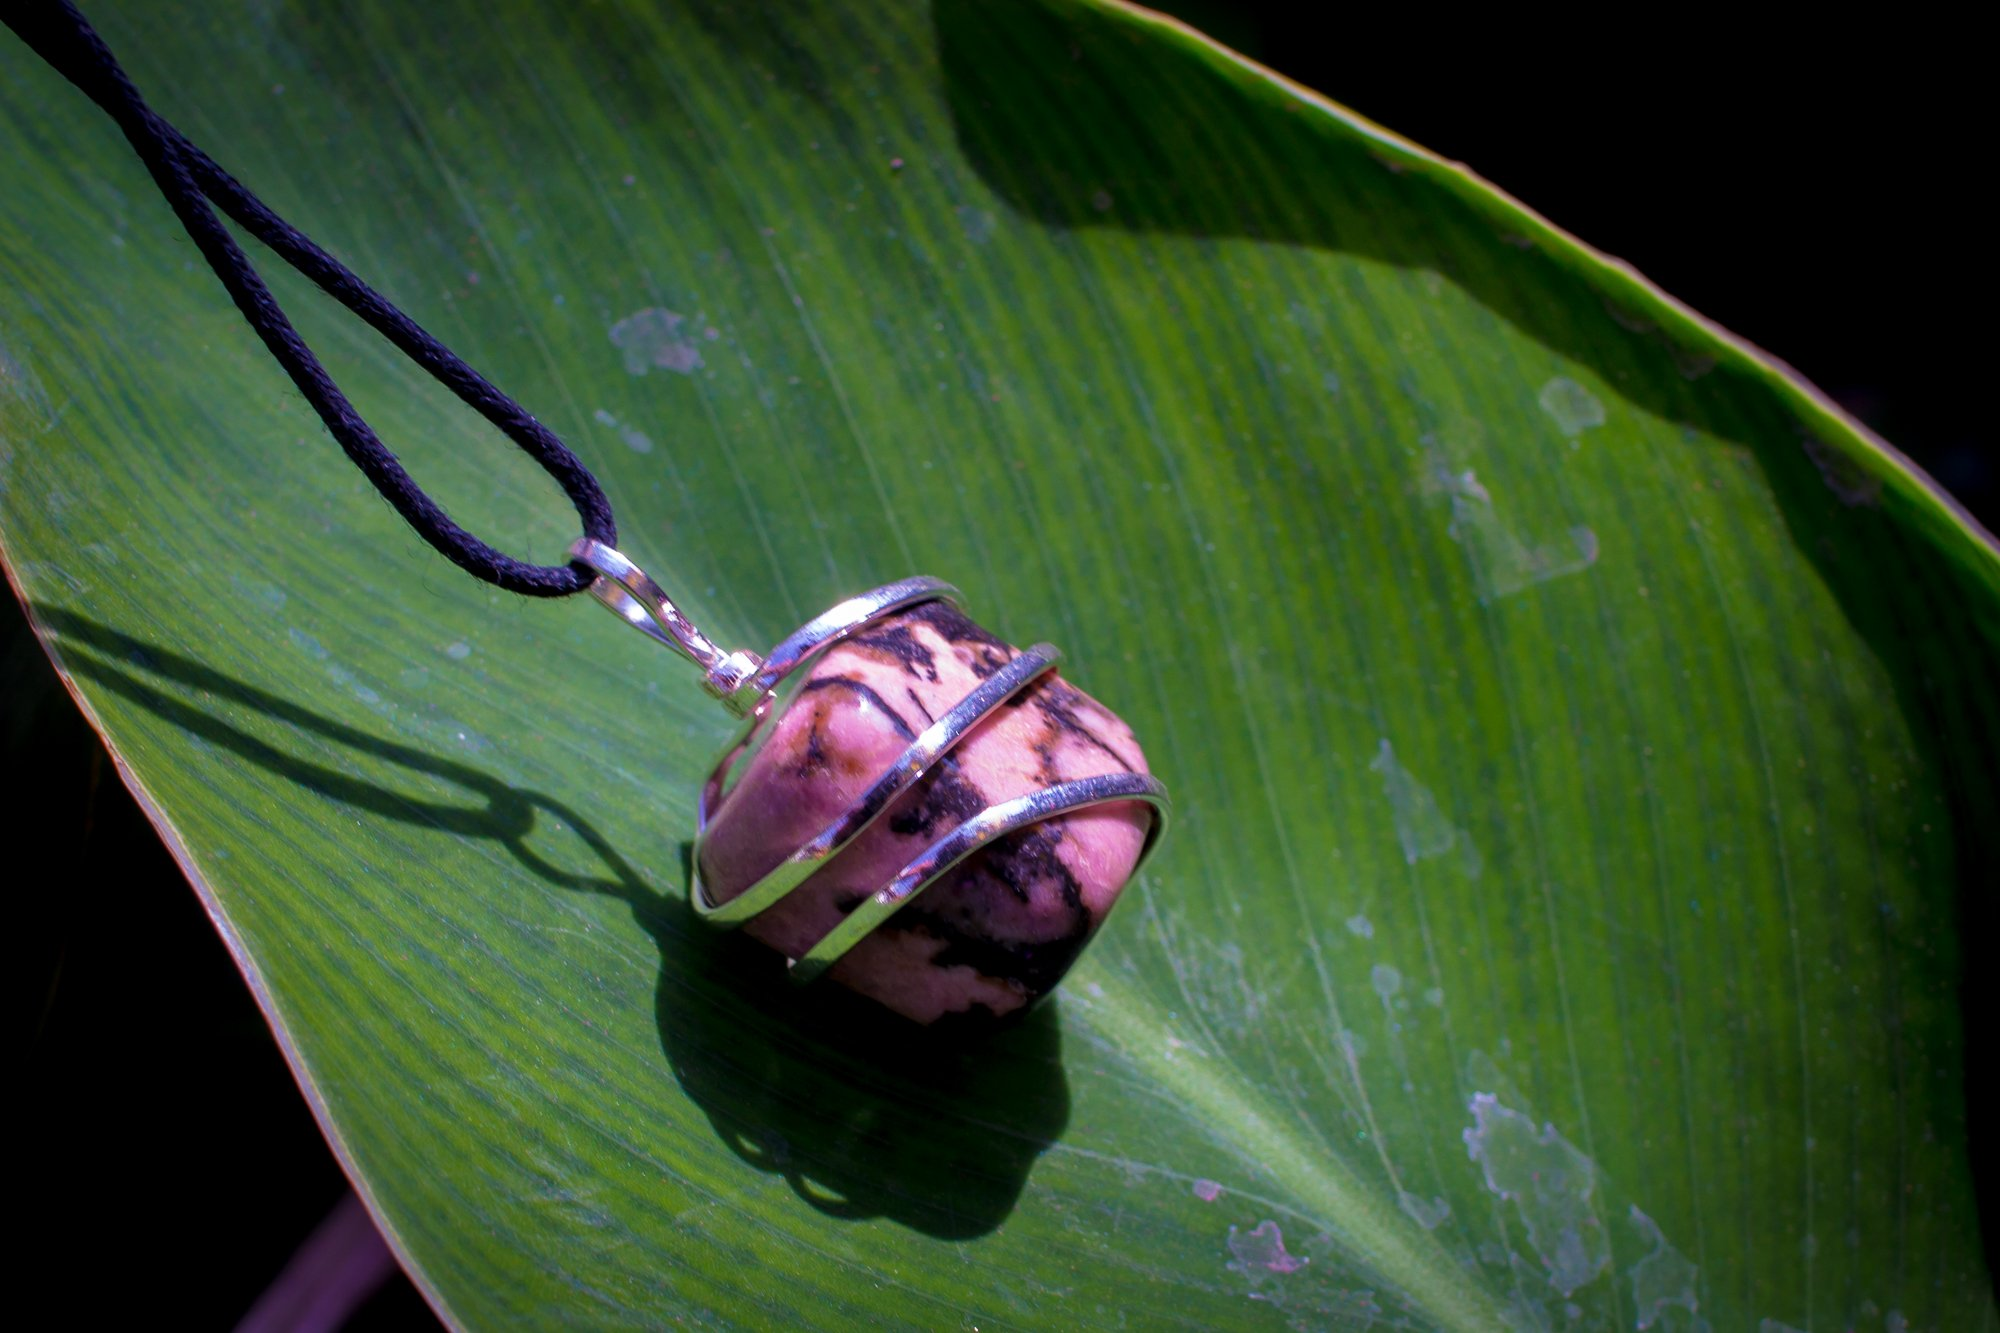 Rhodonite Crystal Pendant Necklace – Compassion Forgiveness Release of Fear Emotional Healing Heartbreak Relationships - Authentic Stone on Adjustable Length Cord - Real Gemstone Chakra Healing Charm by Ayana Wellness (Image #3)